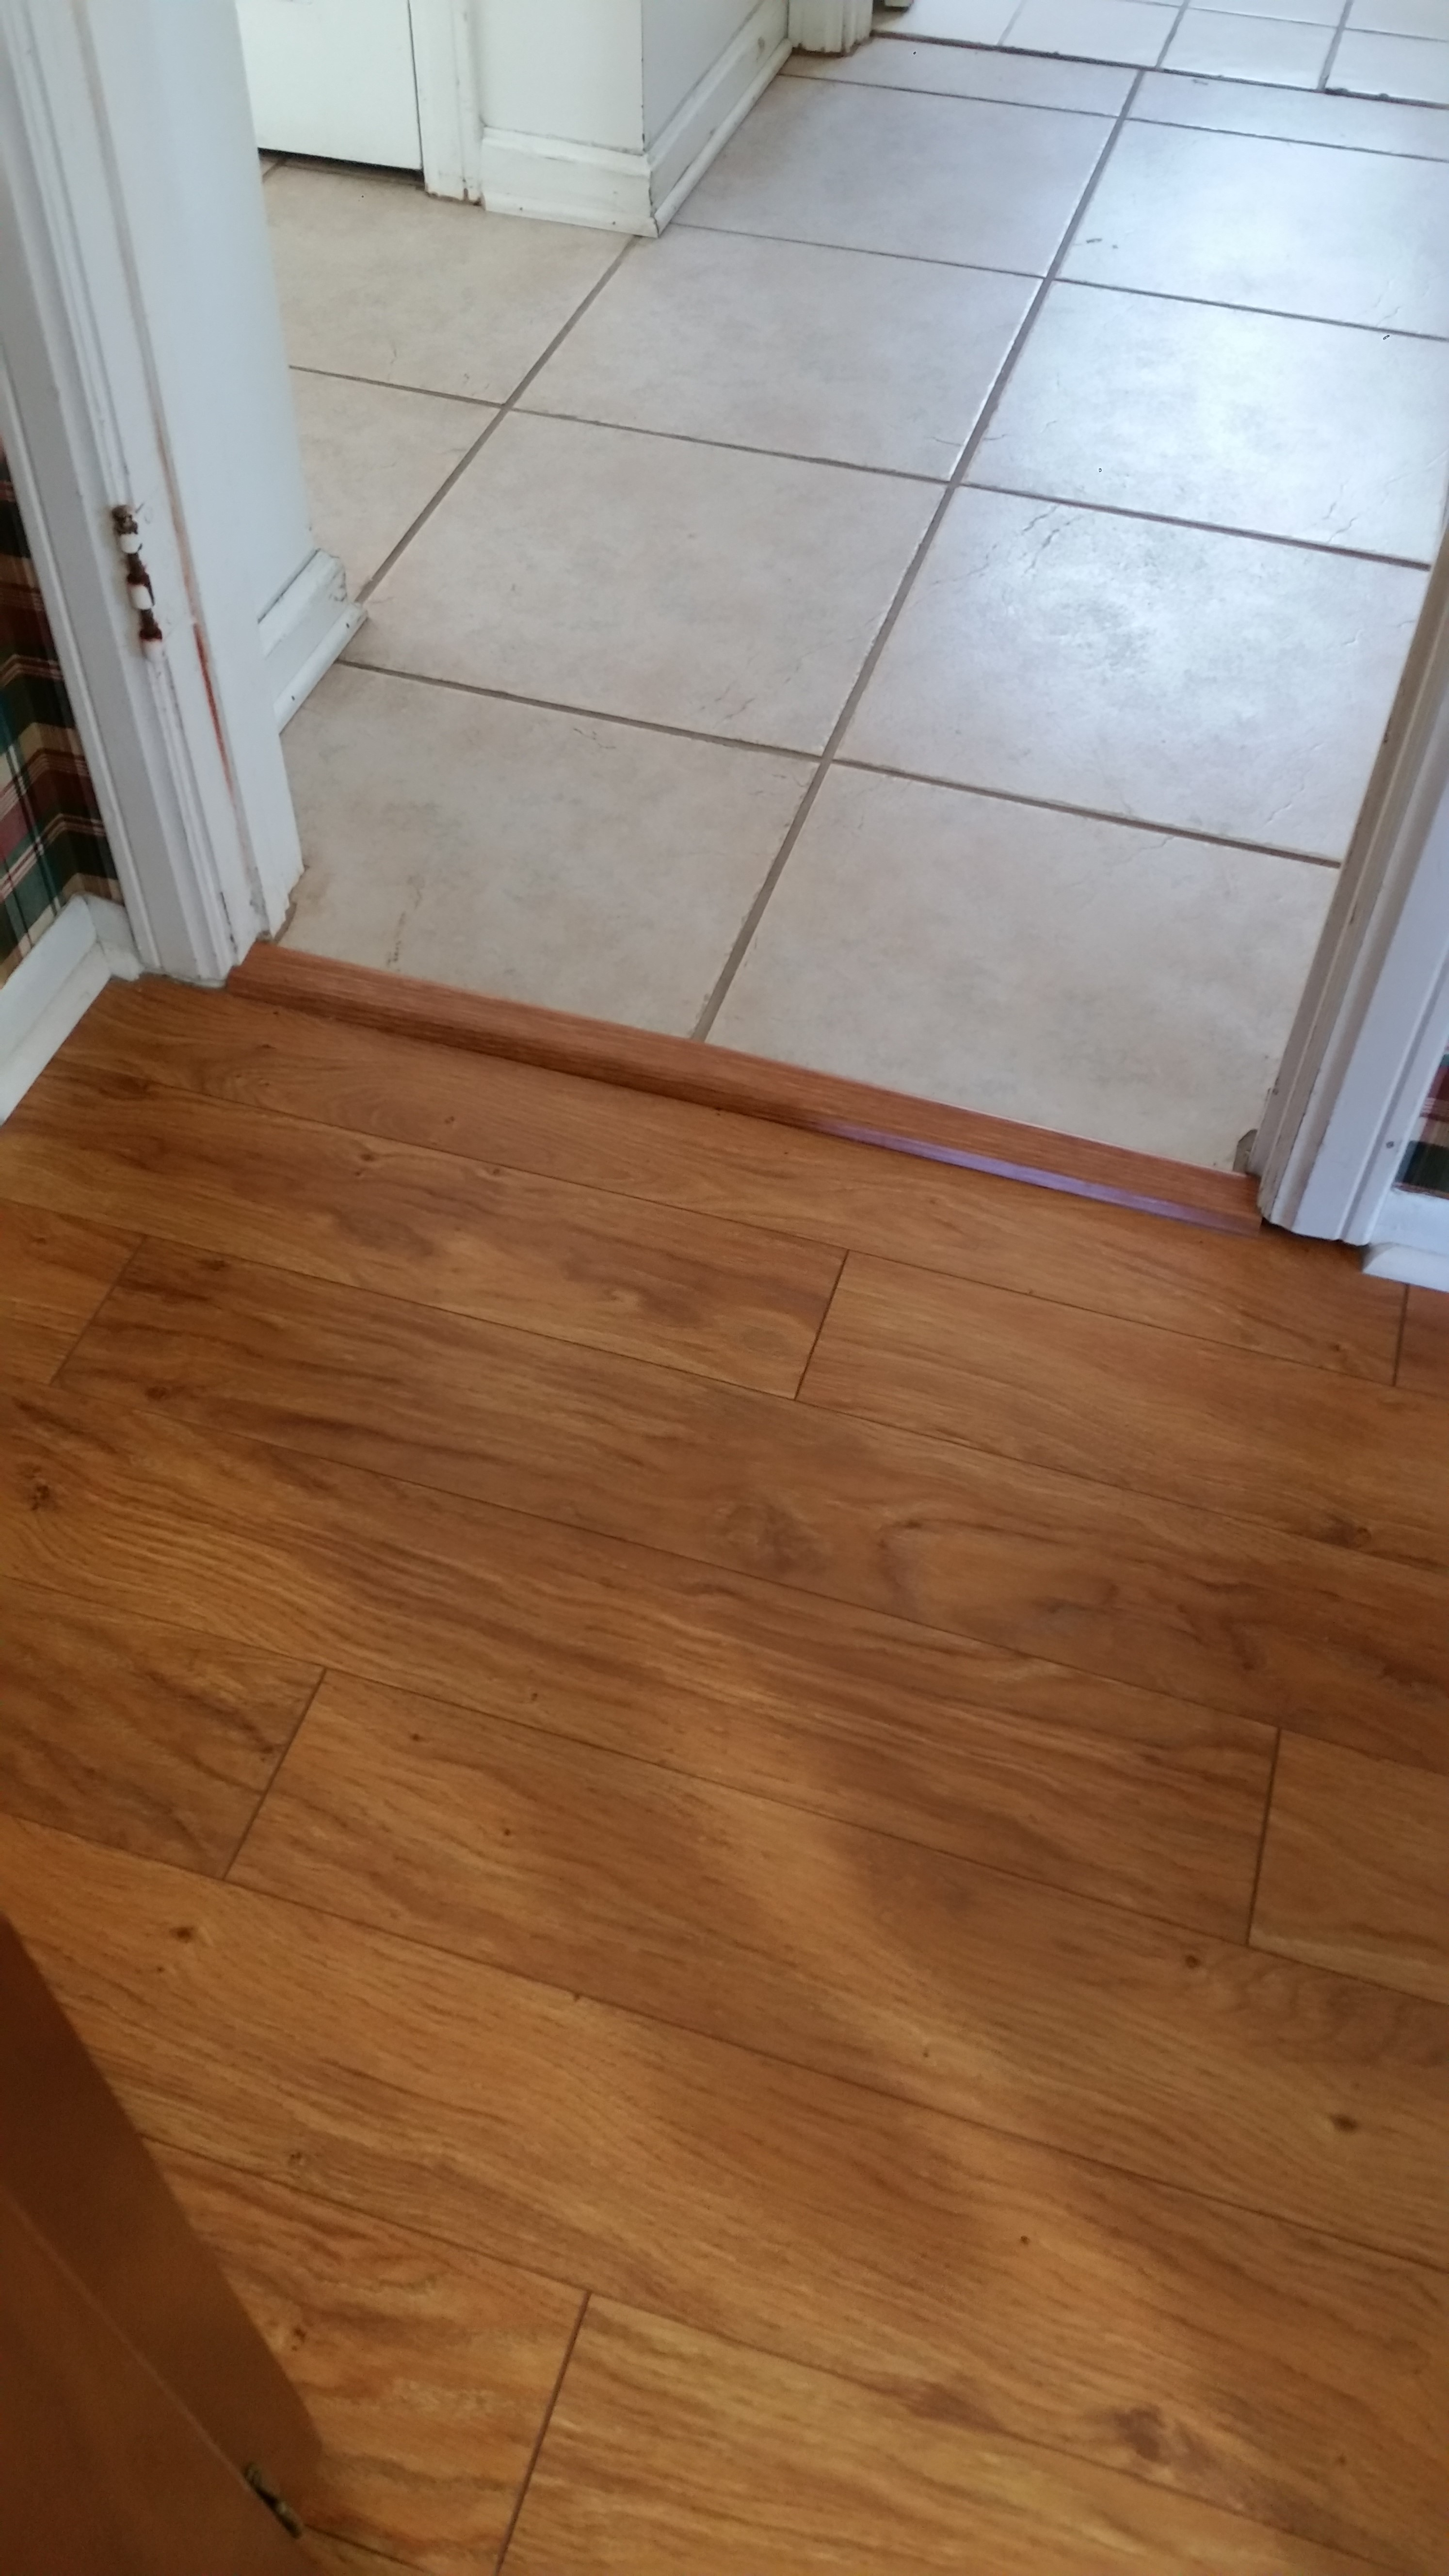 Laminate flooring installation jacksonville fl meze blog for Hardwood floors jacksonville fl